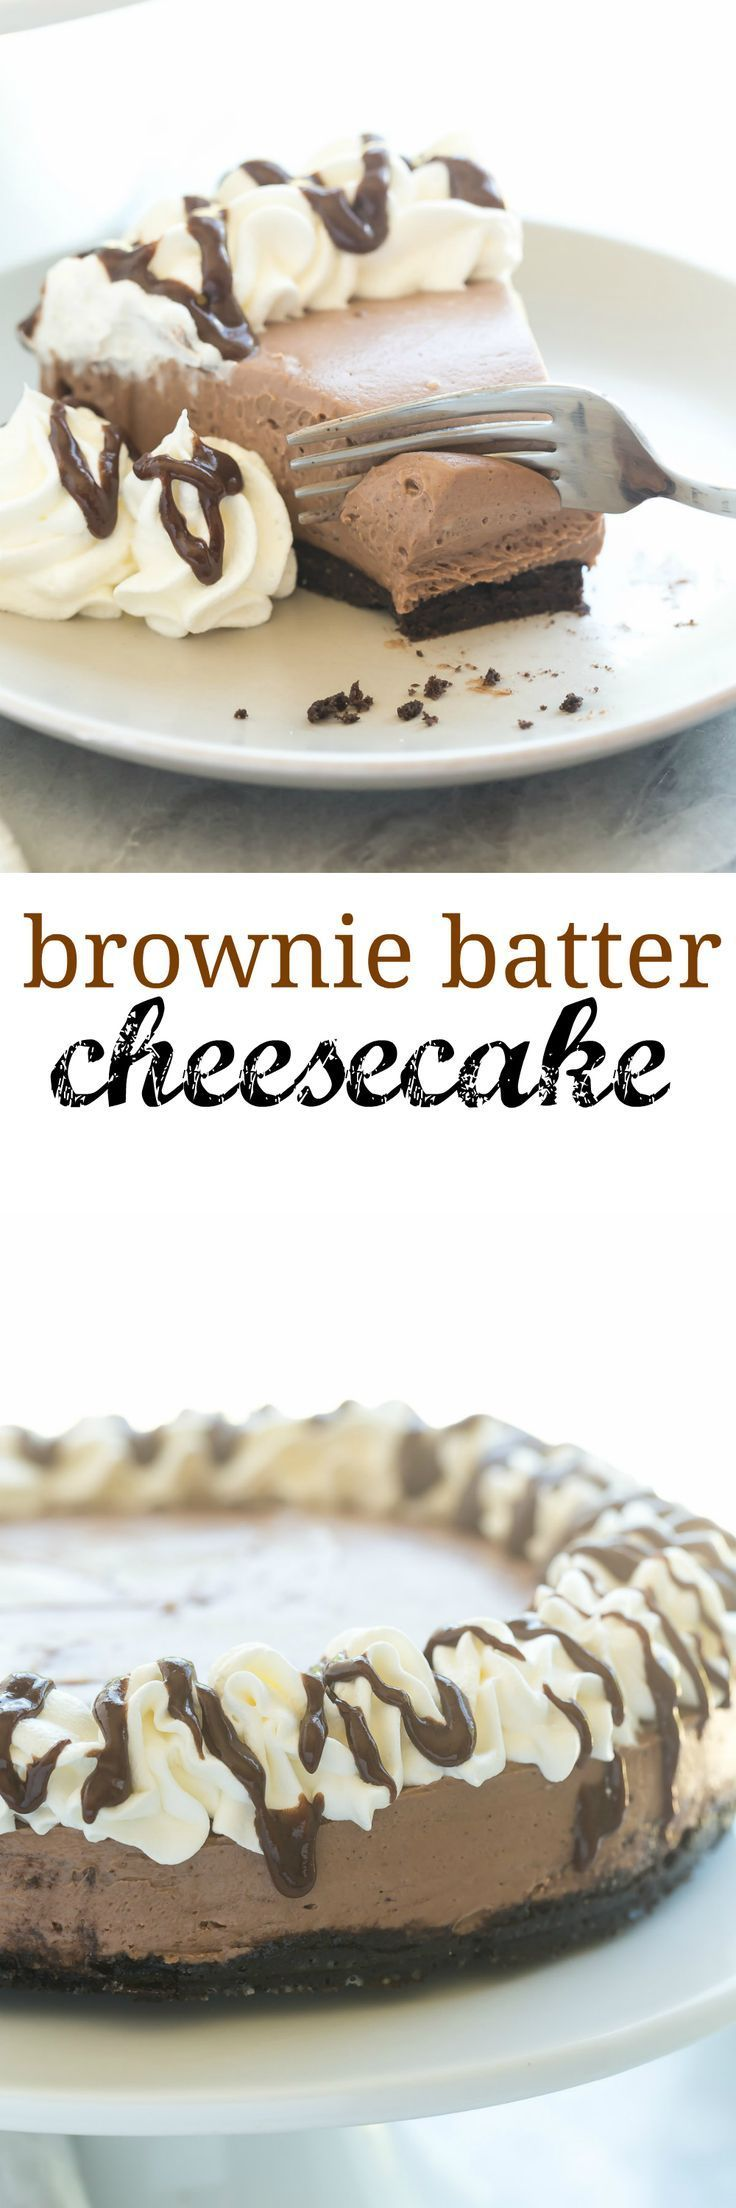 This No Bake Brownie Batter Cheesecake is the cheesecake for chocolate lovers…